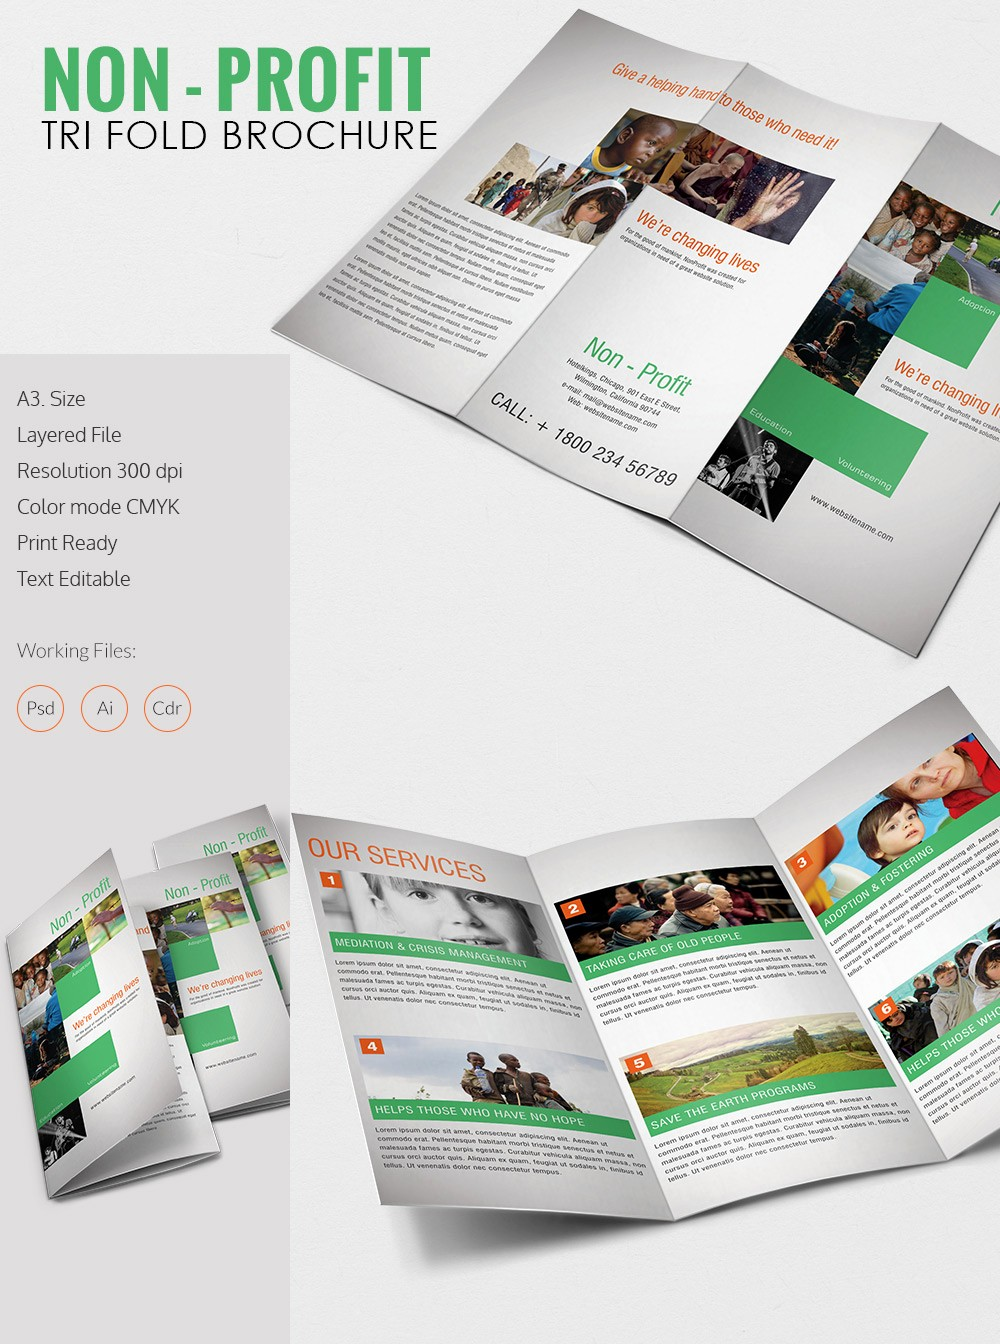 Size Of Tri Fold Brochure Elegant Amazing Non Profit A3 Tri Fold Brochure Template Download